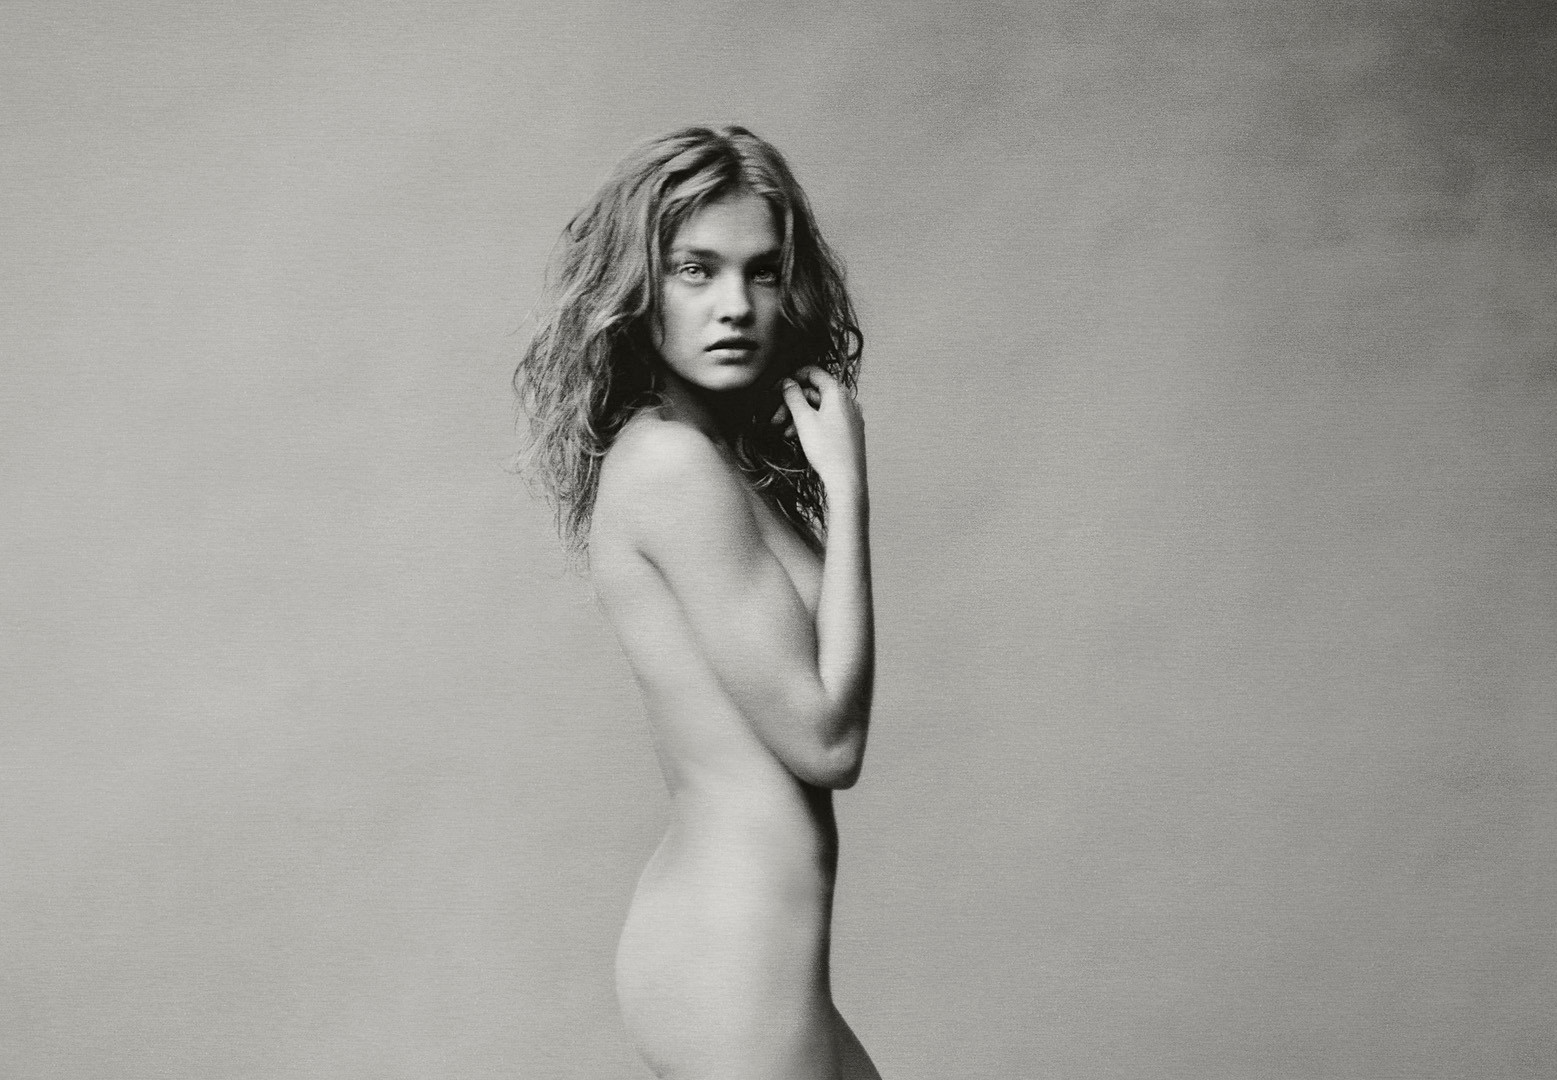 Paolo Roversi, Natalia, Studio rue Paul Fort, Paris, November 23rd, 2003